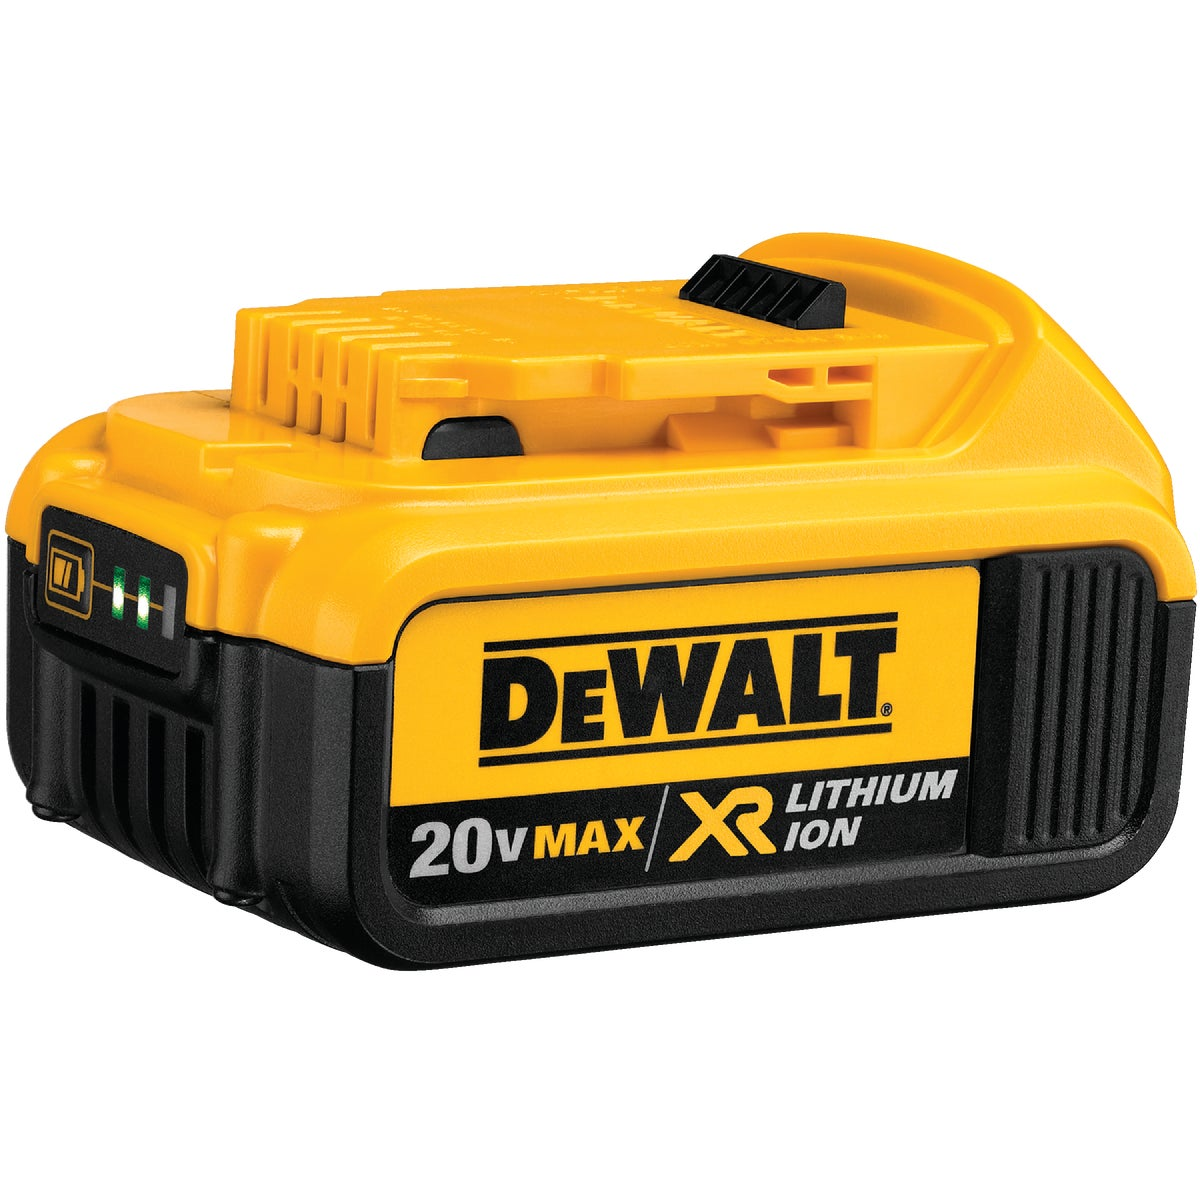 20V MAX 4AH BATTERY - DCB204 by DeWalt